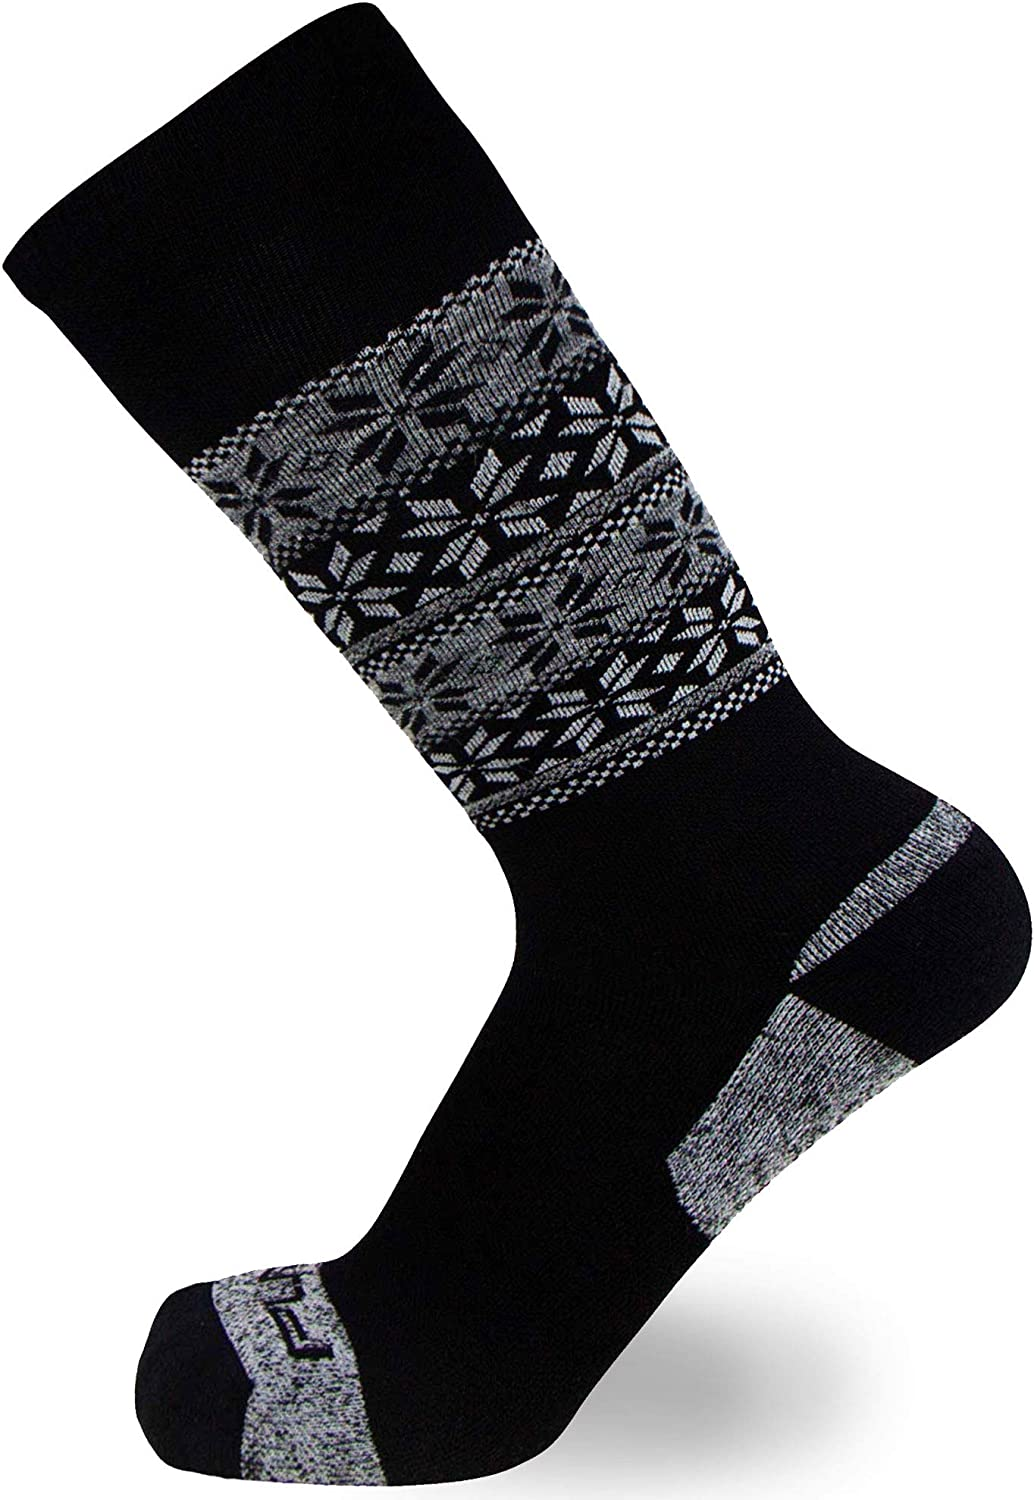 Kids Alpaca Wool Ski Socks - Warm Wool Ski Sock for Boys, Girls - Skiing, Snowboarding